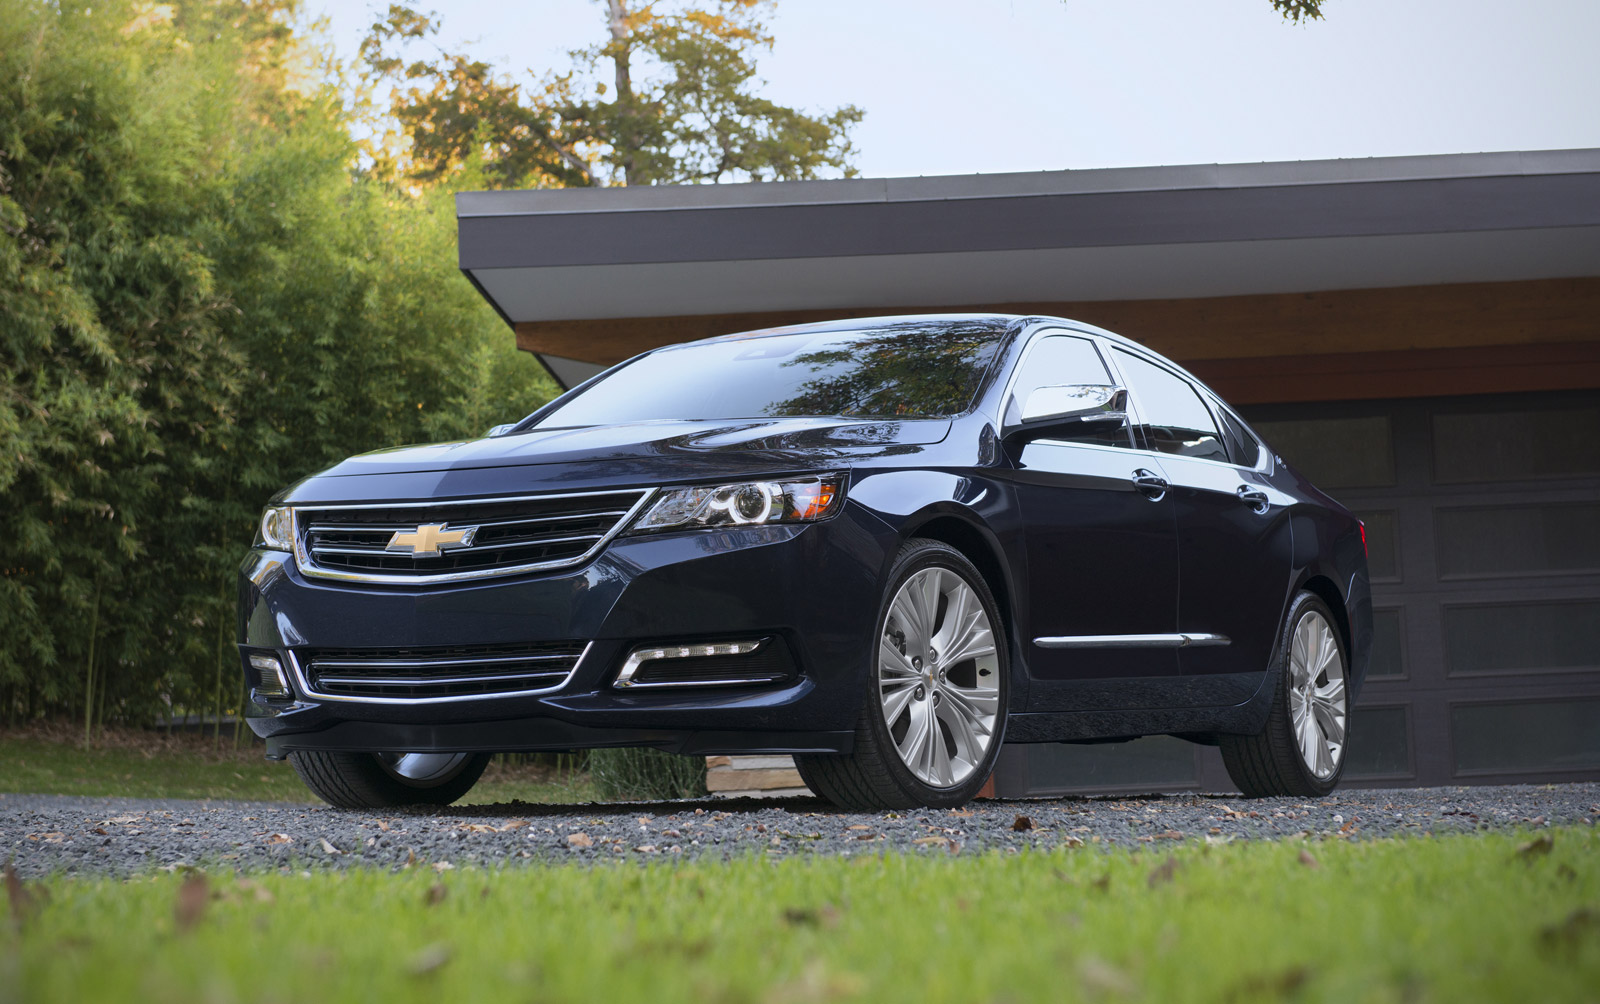 2017 Chevrolet Impala Recalled For Possible Airbag Flaw